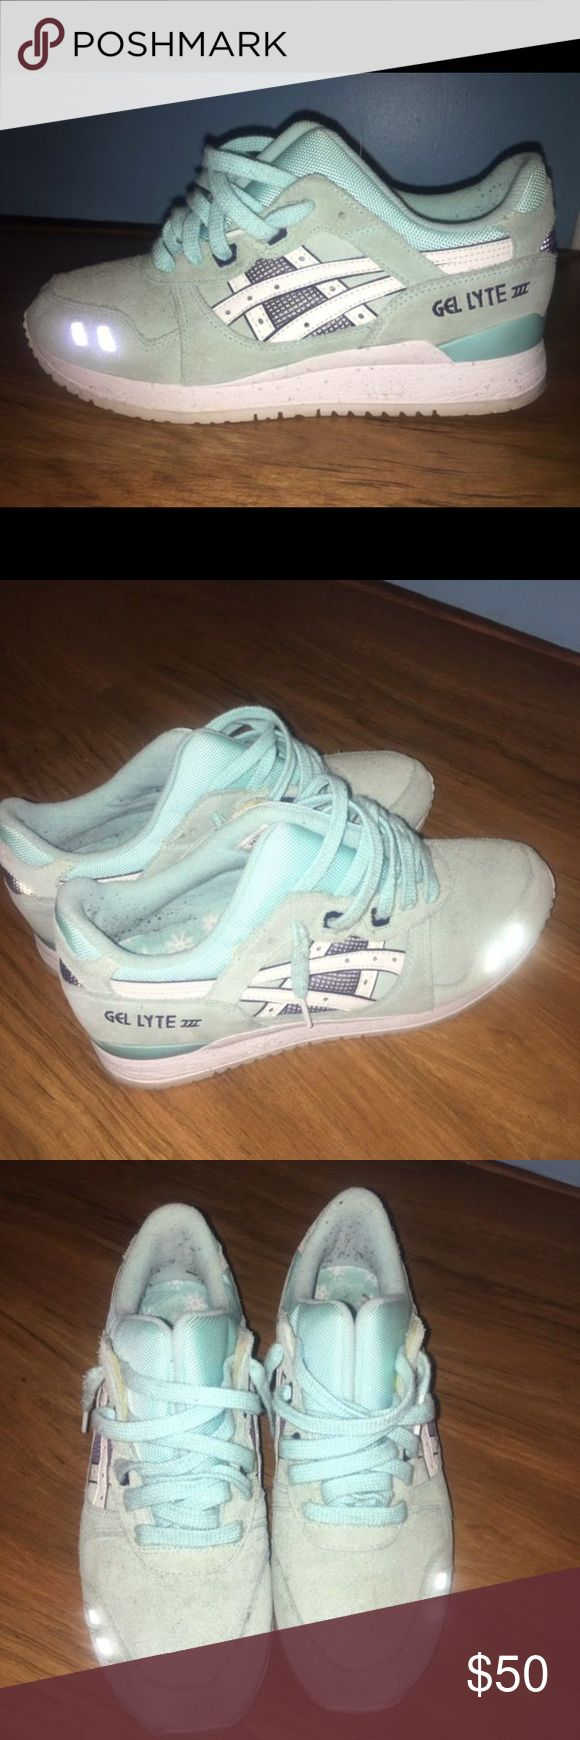 asic gel lyte no box. worn 3x times. 7/10 condition. scuff on toe, could be cleaned off. women's 9, men's 7 1/2. Asics Shoes Sneakers